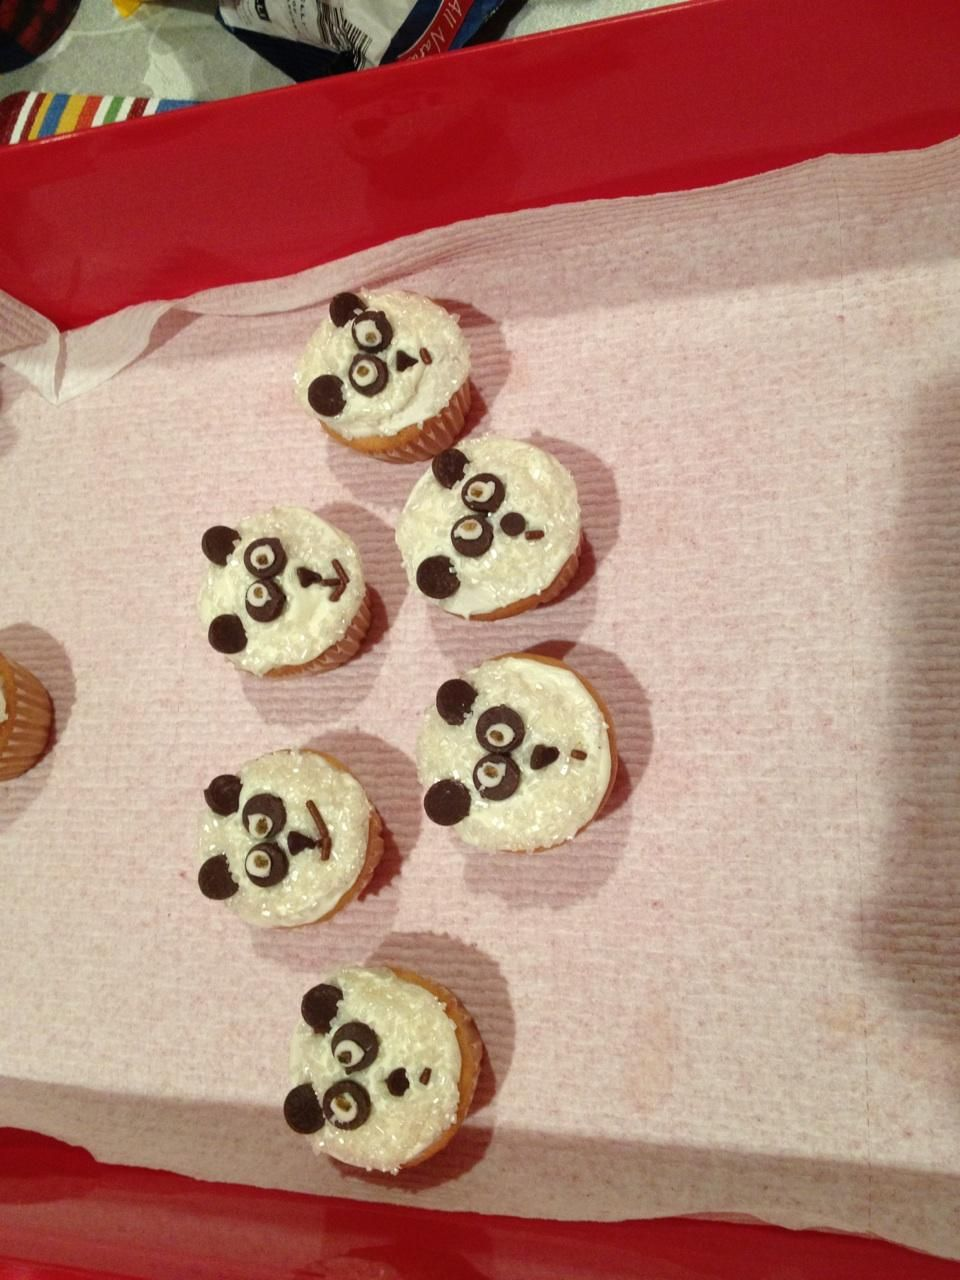 Mini panda bear cupcakes made with mini chocolate chips for nose, reg chocolate chips for the eyes and ears and sprinkles for mouth and white of eyes...I used edible ink on eye sprinkles.